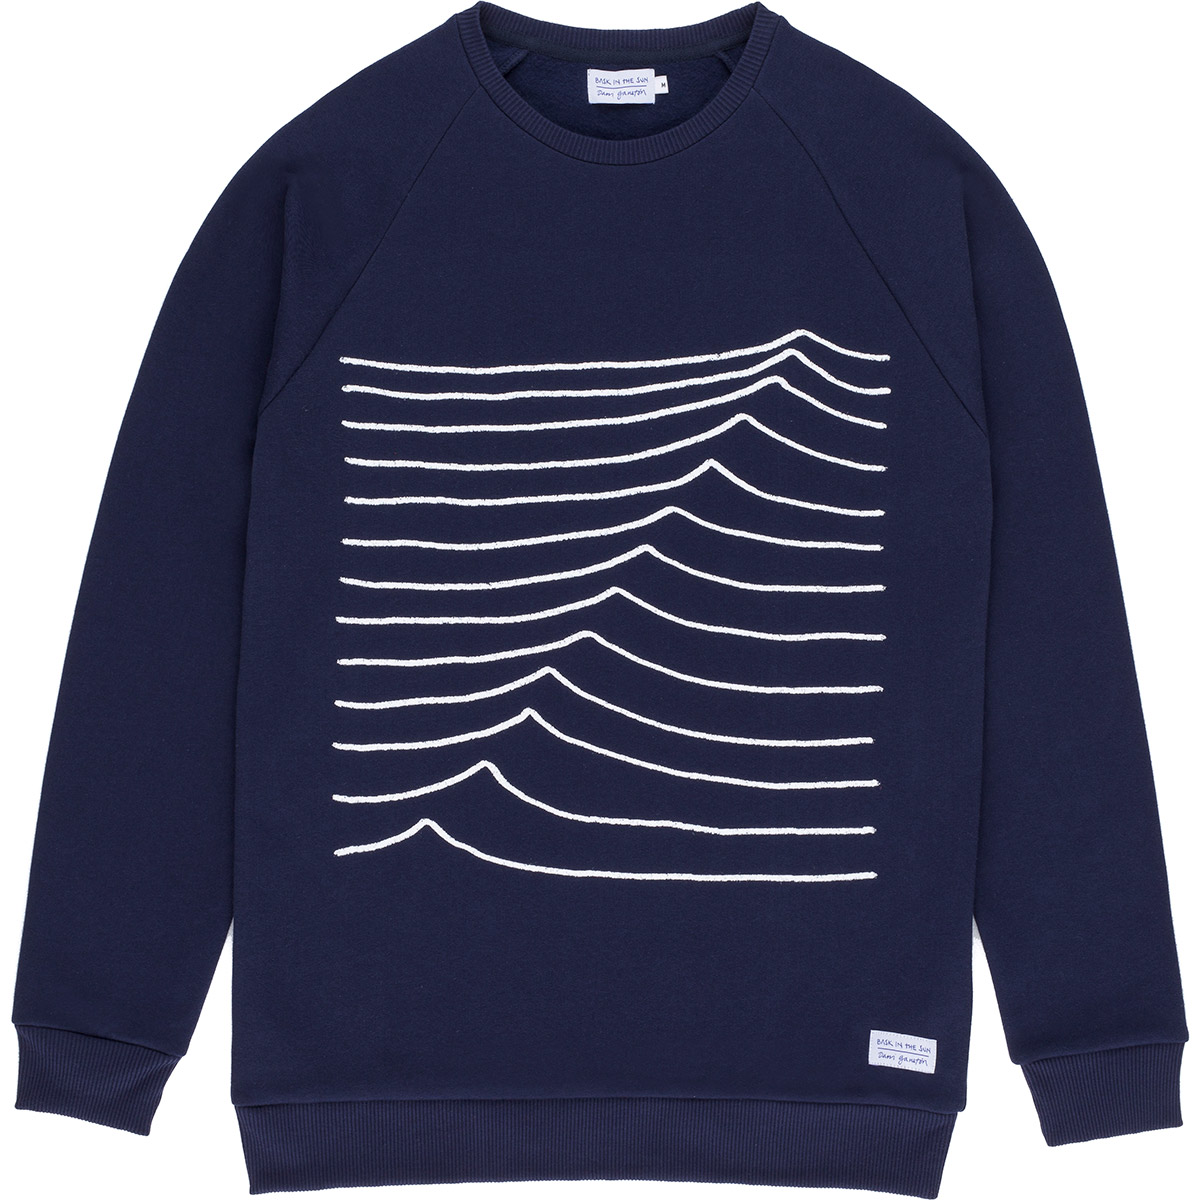 Bask in the Sun - Sweat en coton bio navy swell